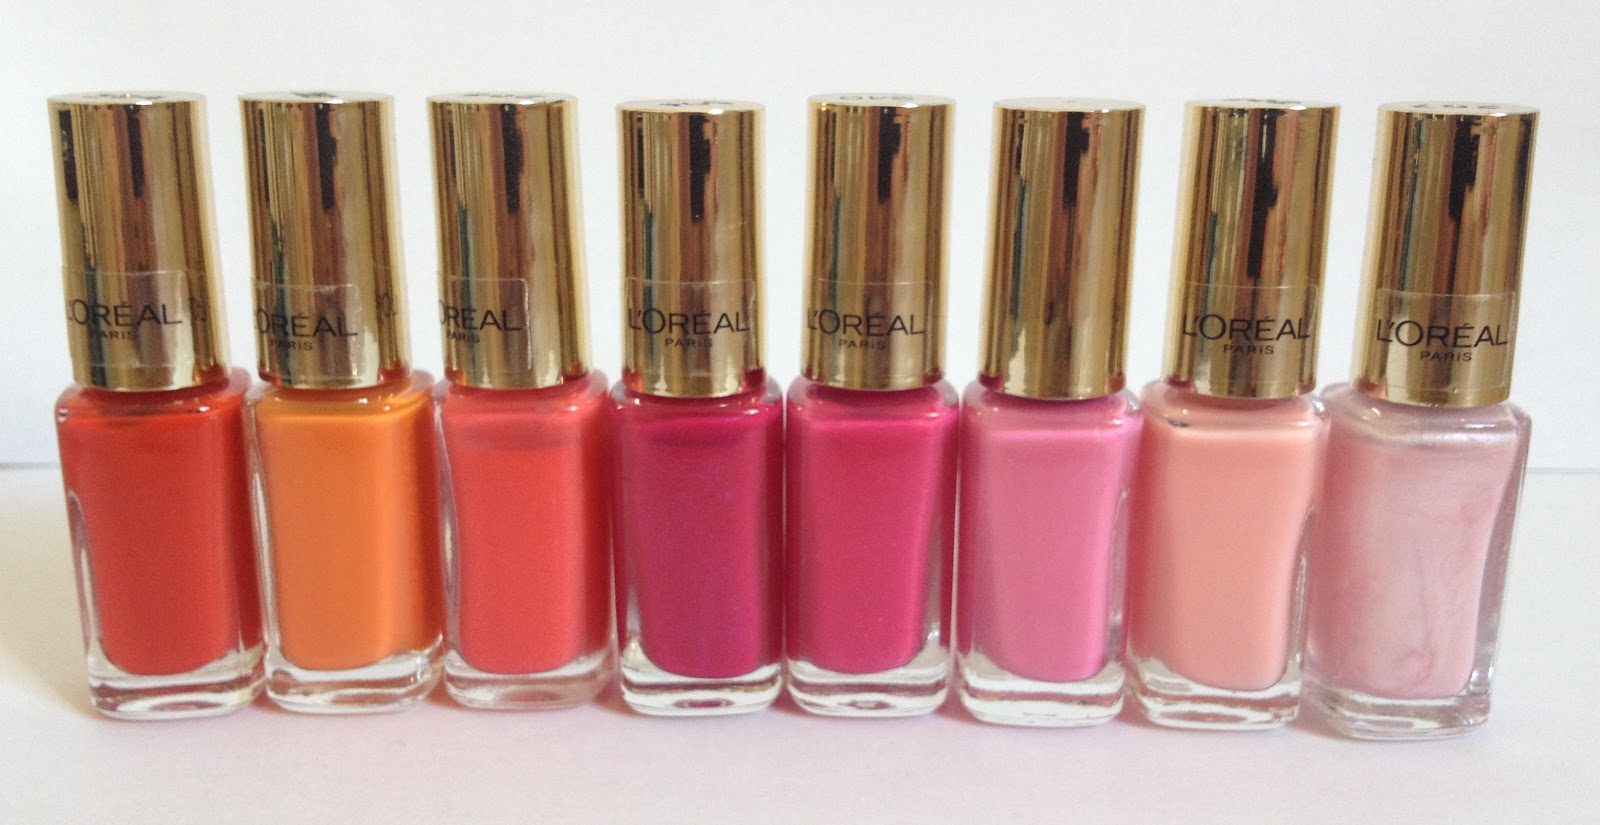 Coleyyyful: A Beauty & Fashion Blog: L'Oreal Color Riche Nail ...